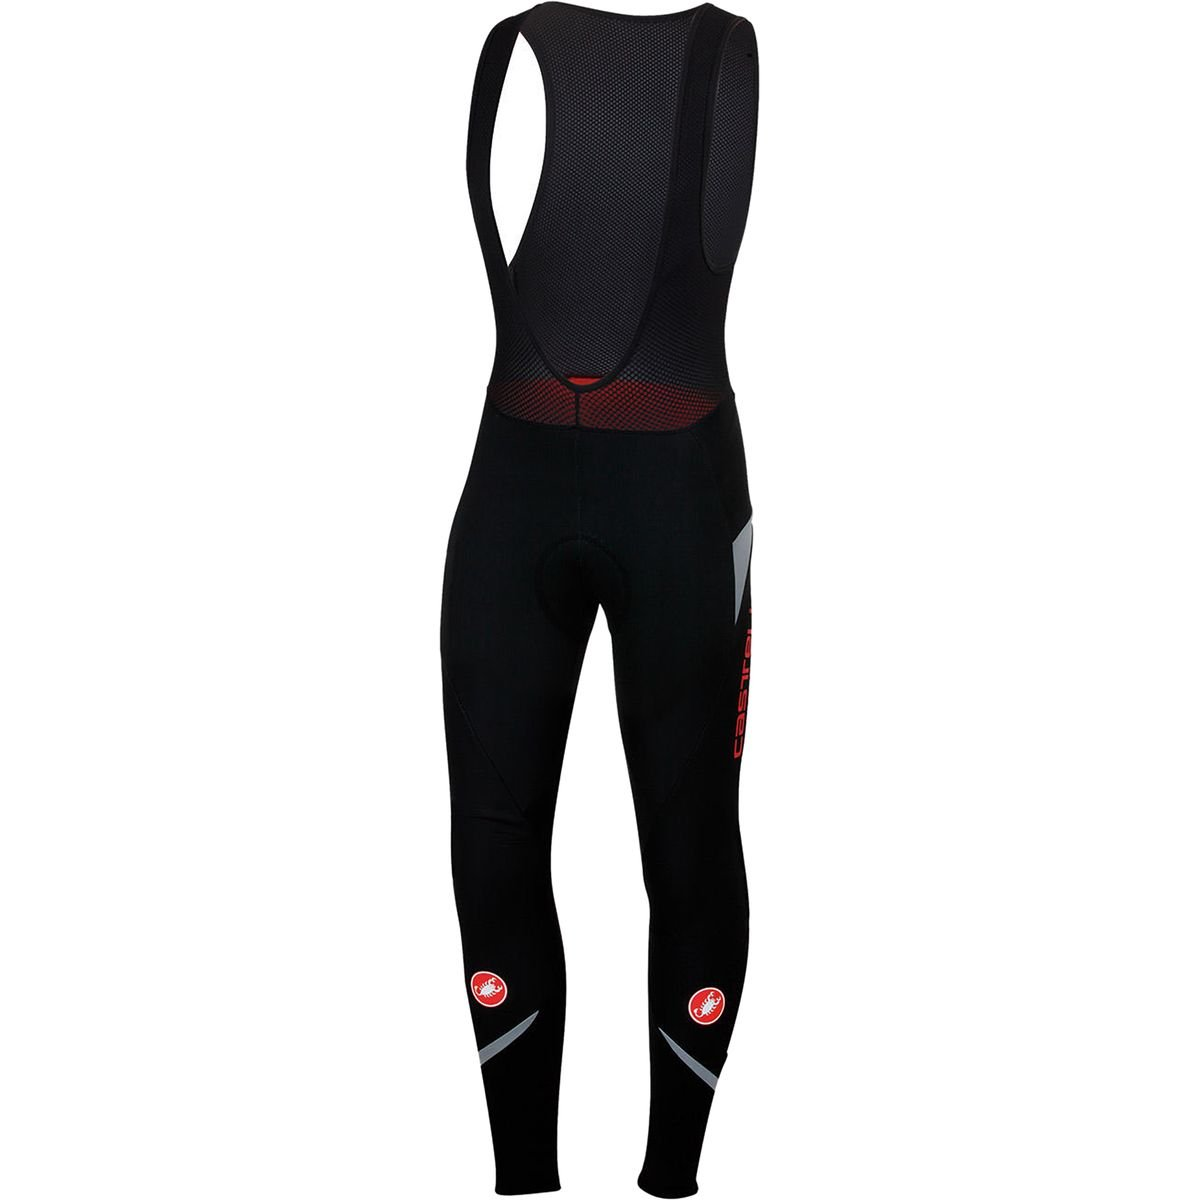 Castelli Polare 2 Bib Tight - Men's Black/Reflex, S by Castelli (Image #1)